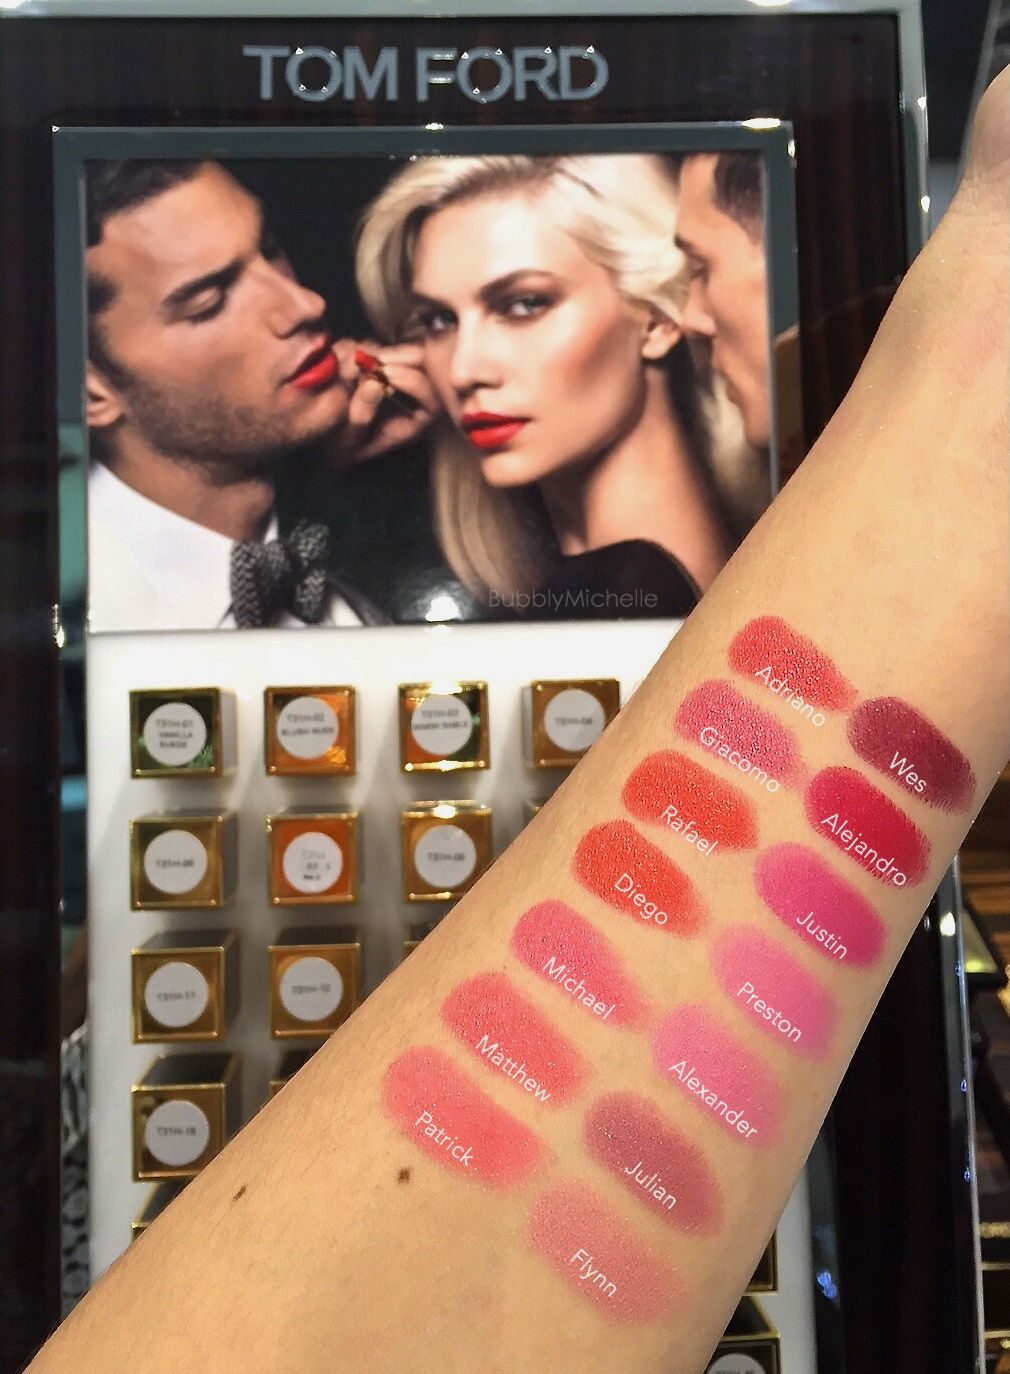 Tom Ford Lips and Boys Lipstick swatches by Bubbly Michelle